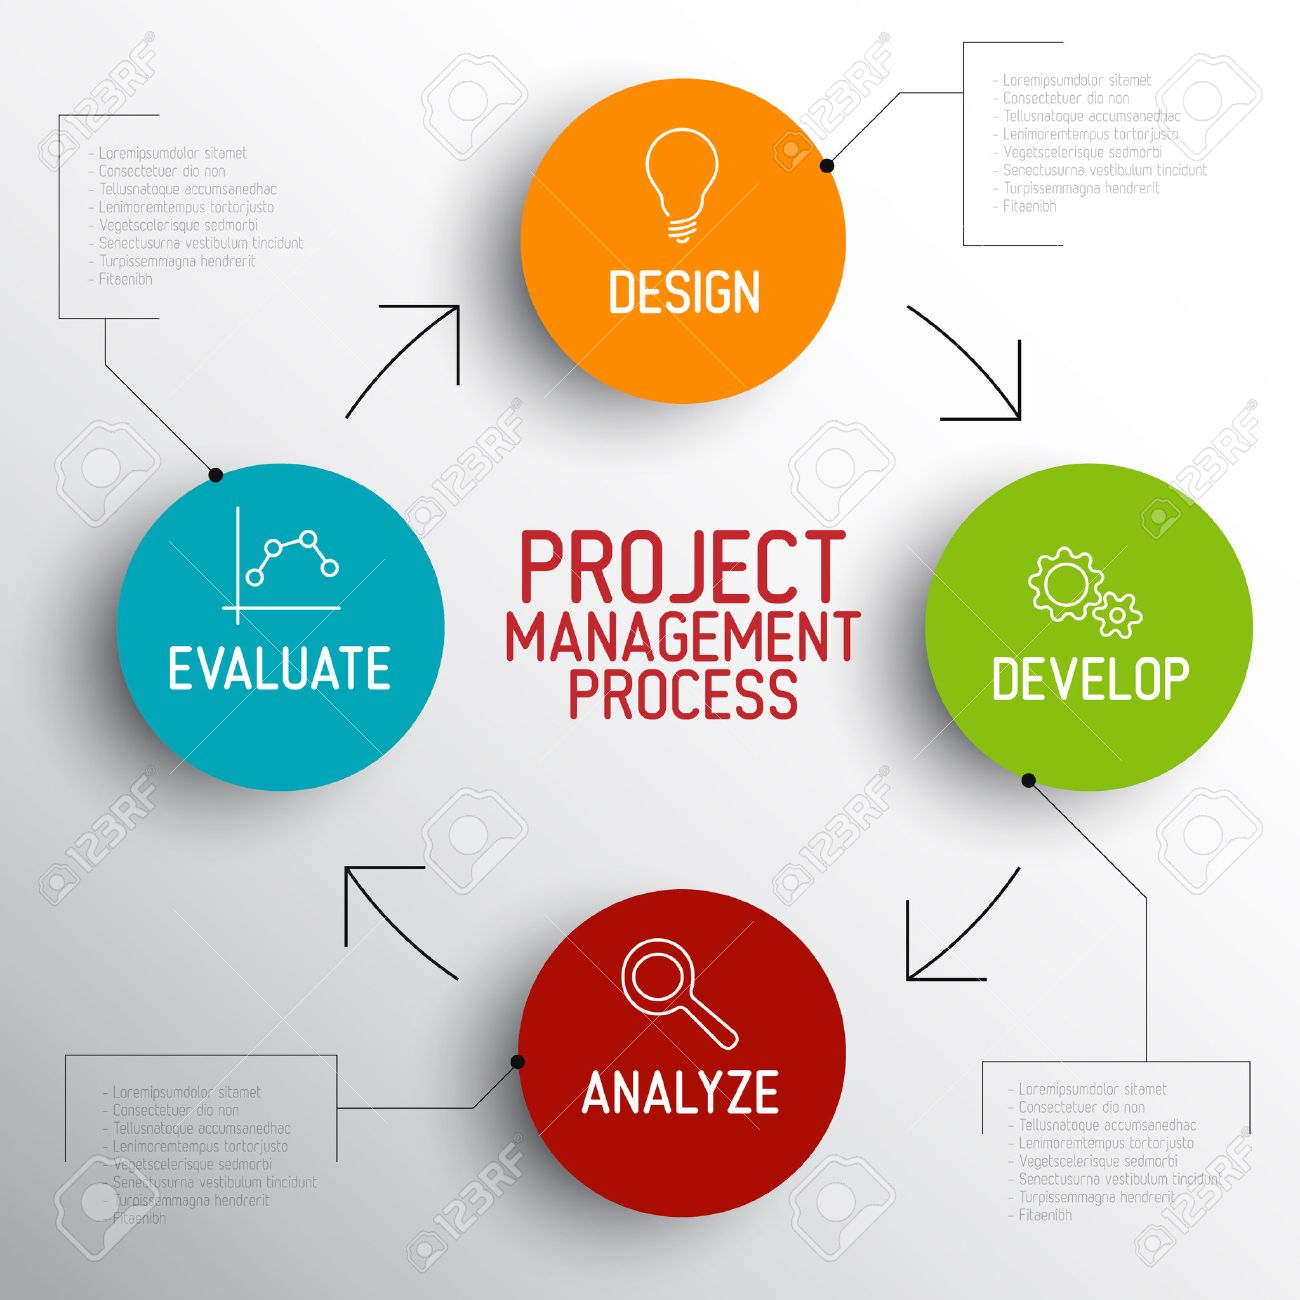 budget planning tools diagram yamaha draw a blueprint online truck 29265514 vector project management process diagram - Online Process Diagram